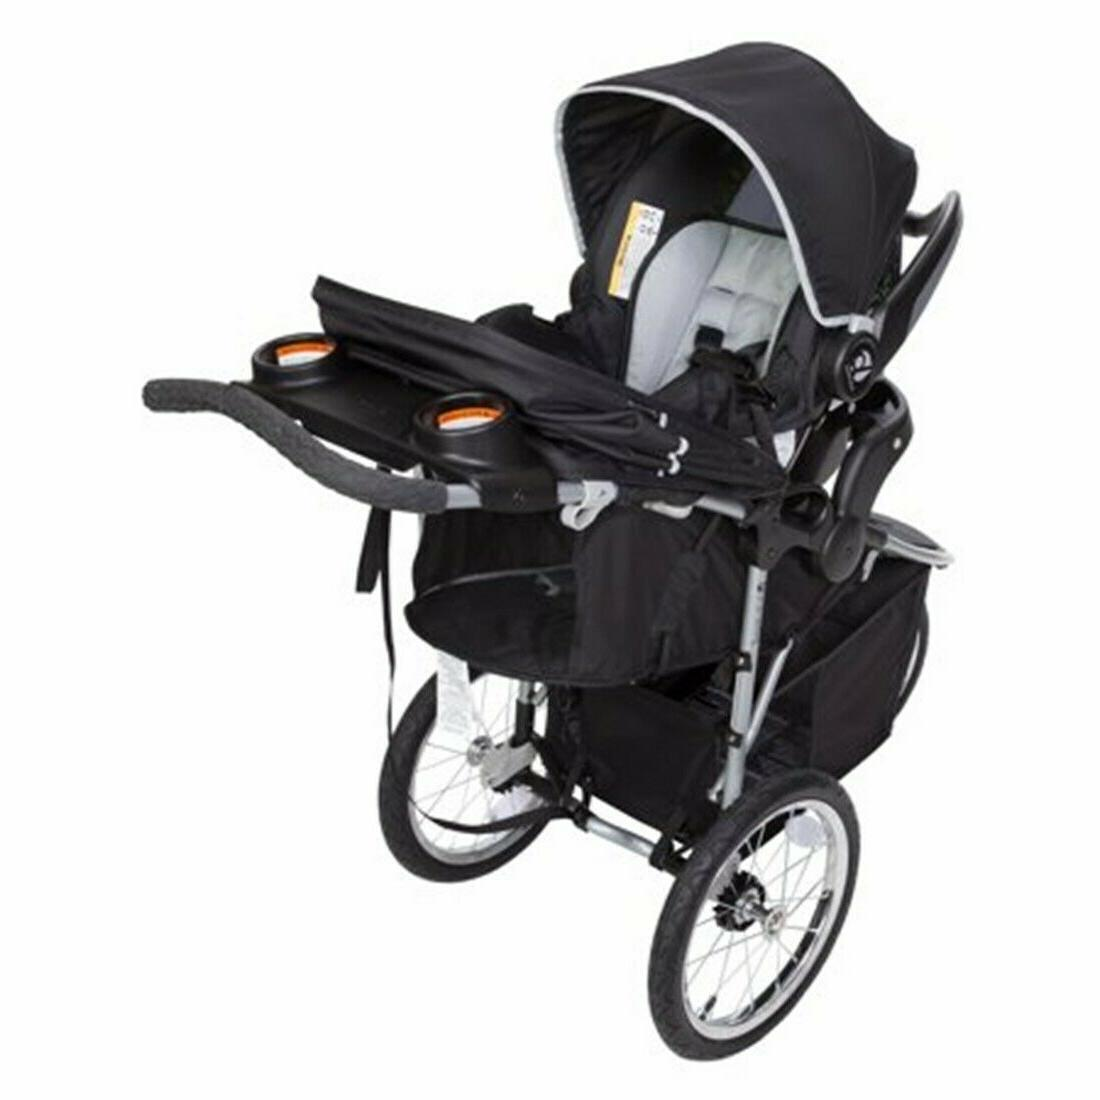 Baby Stroller System With Car Seat